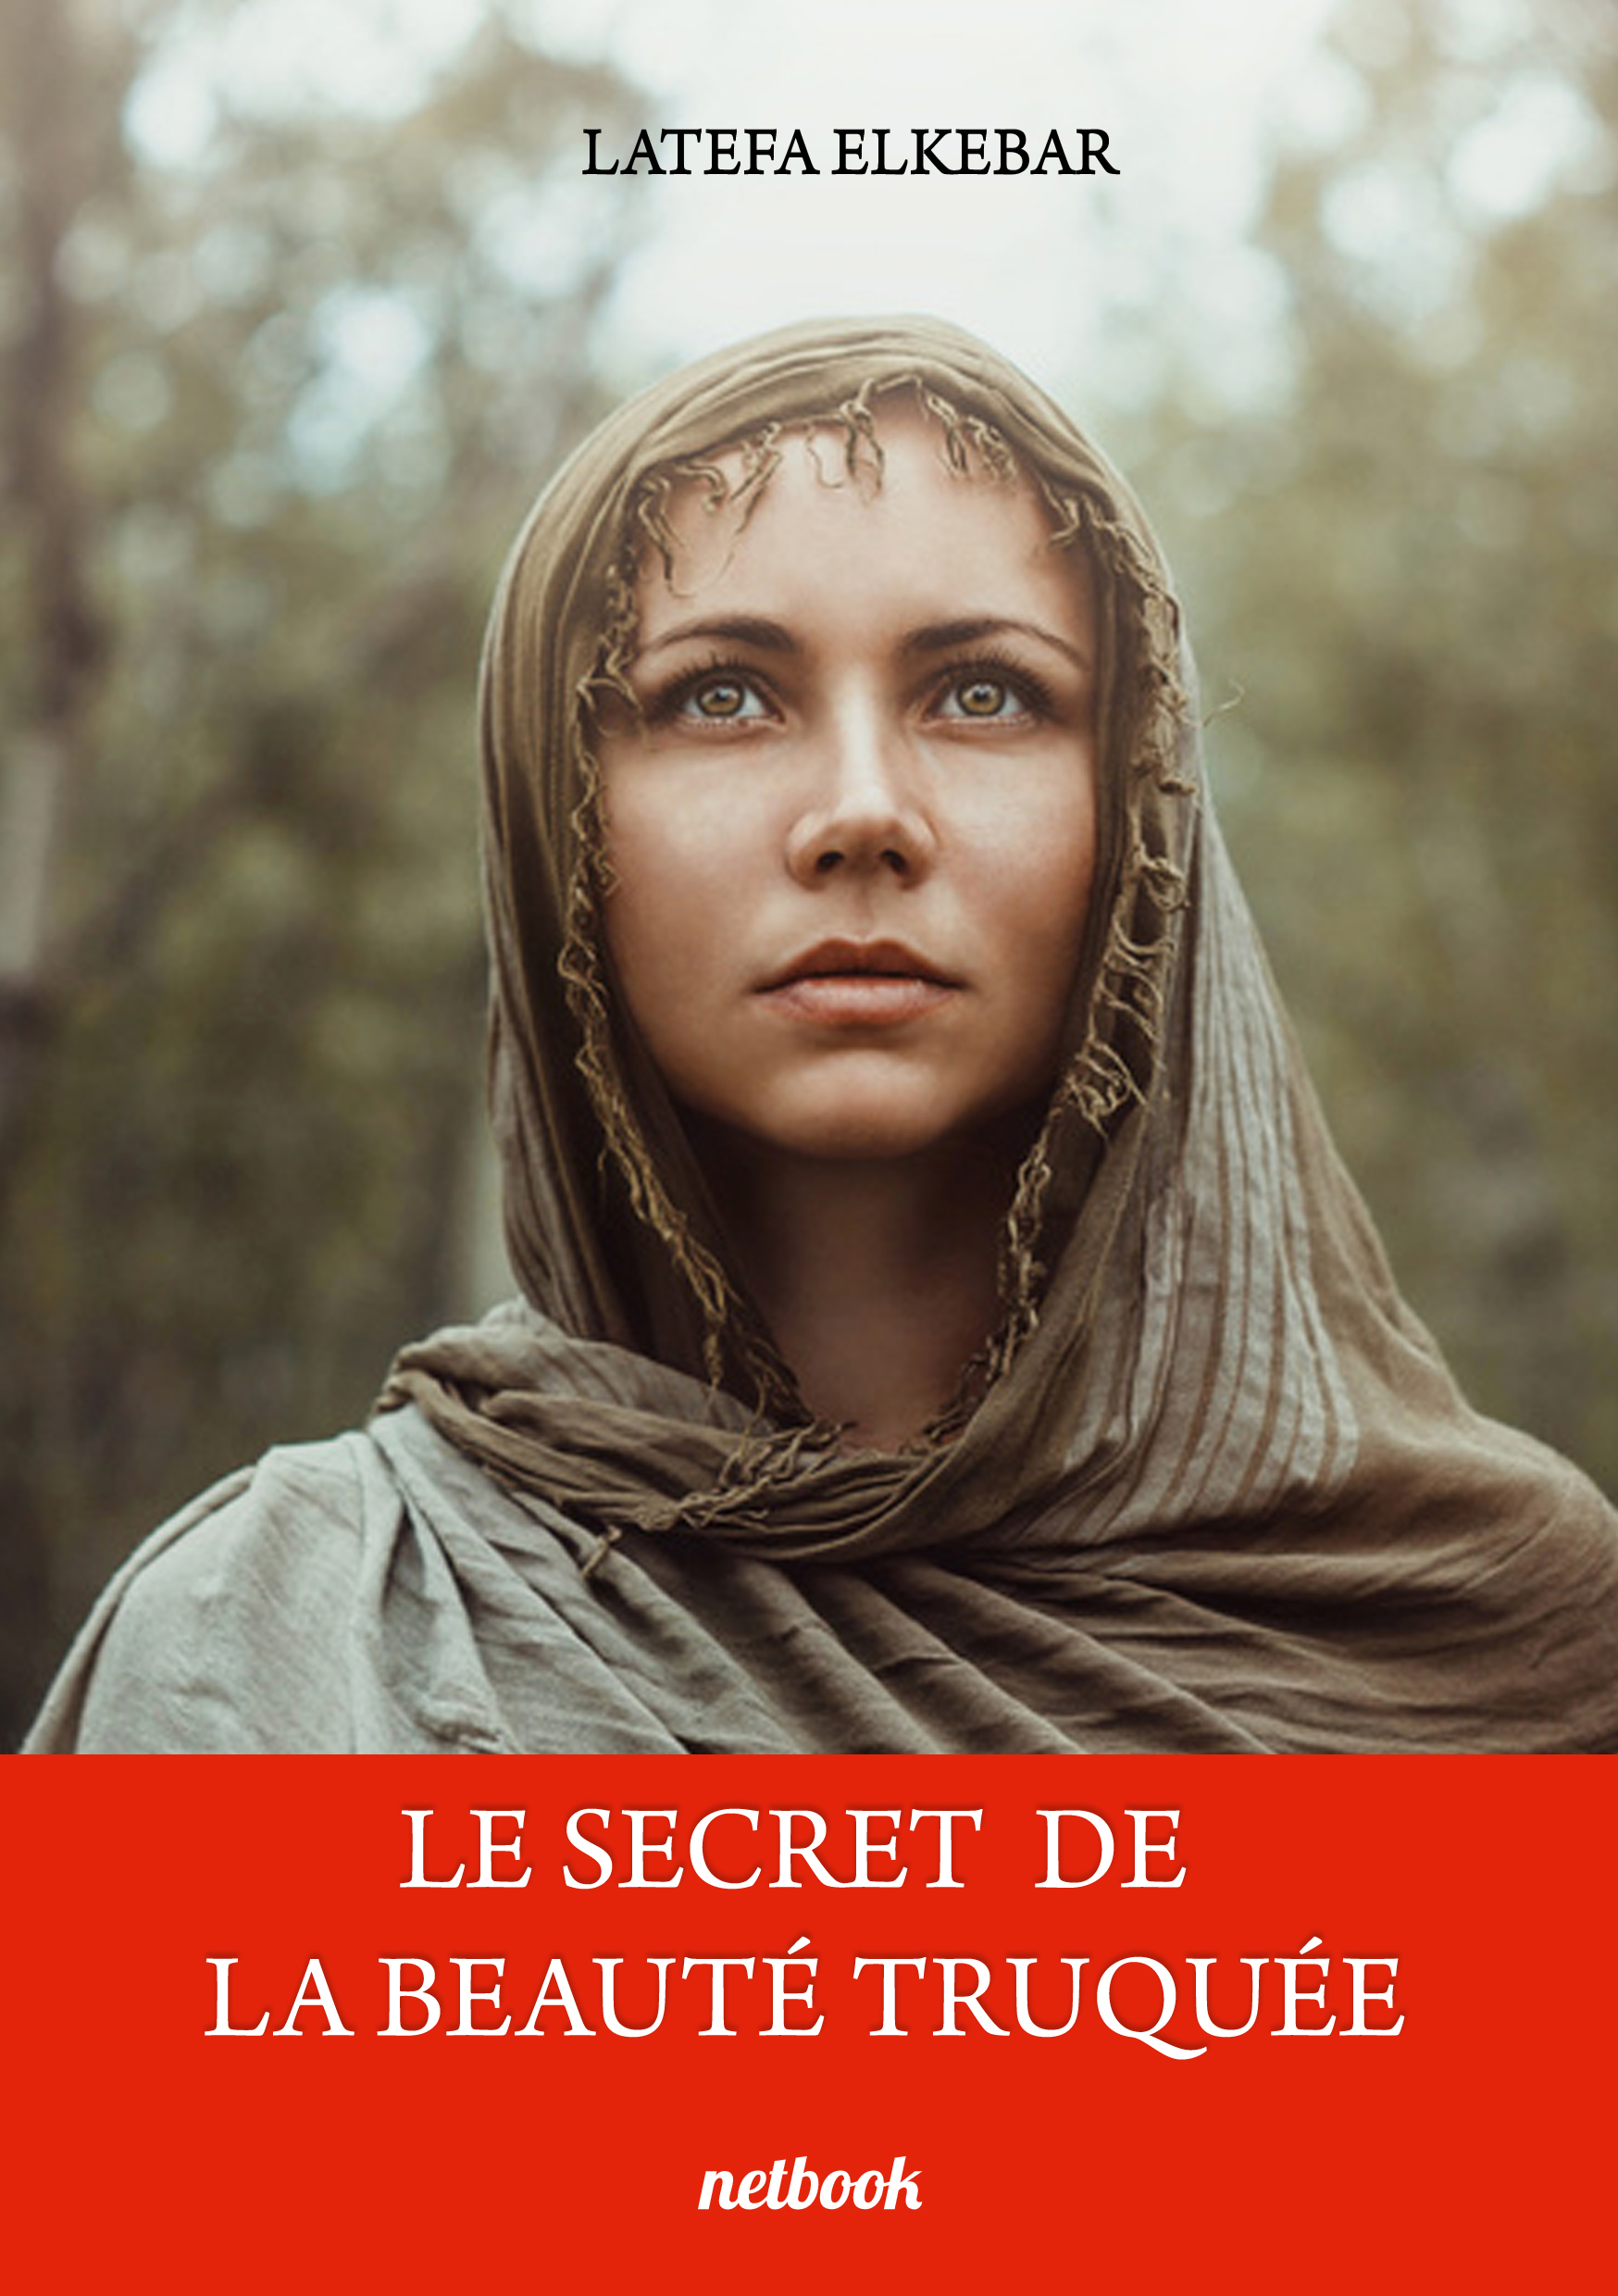 LE SECRET DE LA BEAUTE TRUQUEE